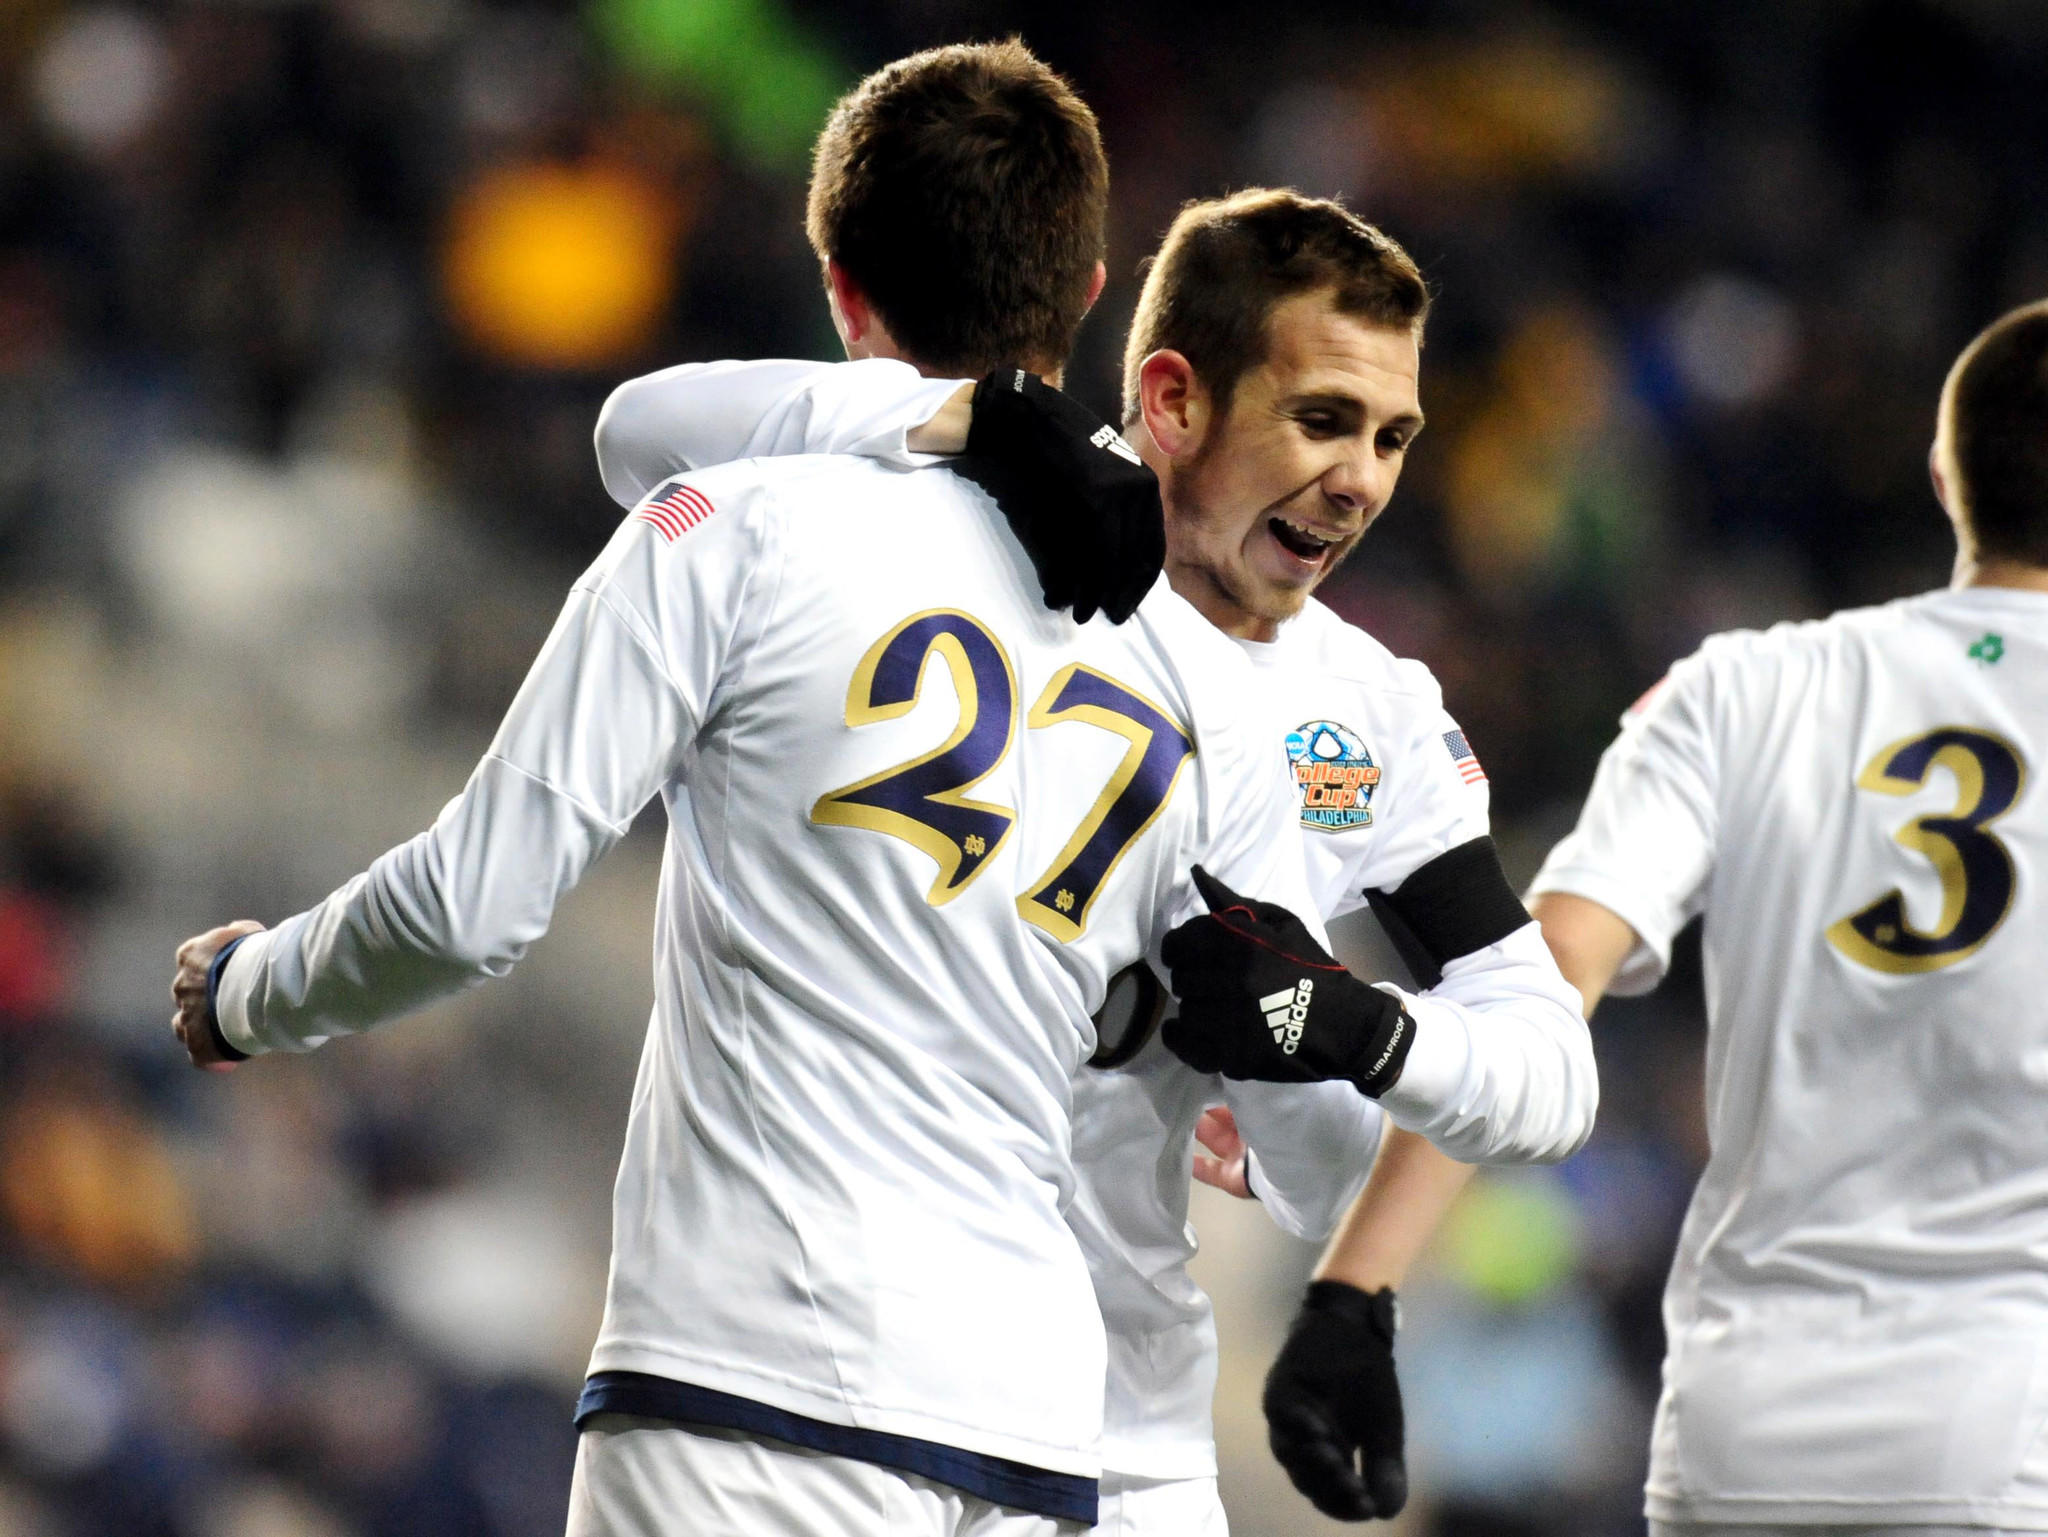 Notre Dame Fighting Irish midfielder Patrick Hodan (27) is congratulated by forward Harrison Shipp after scoring a goal in the first half against the New Mexico Lobos at PPL Park.